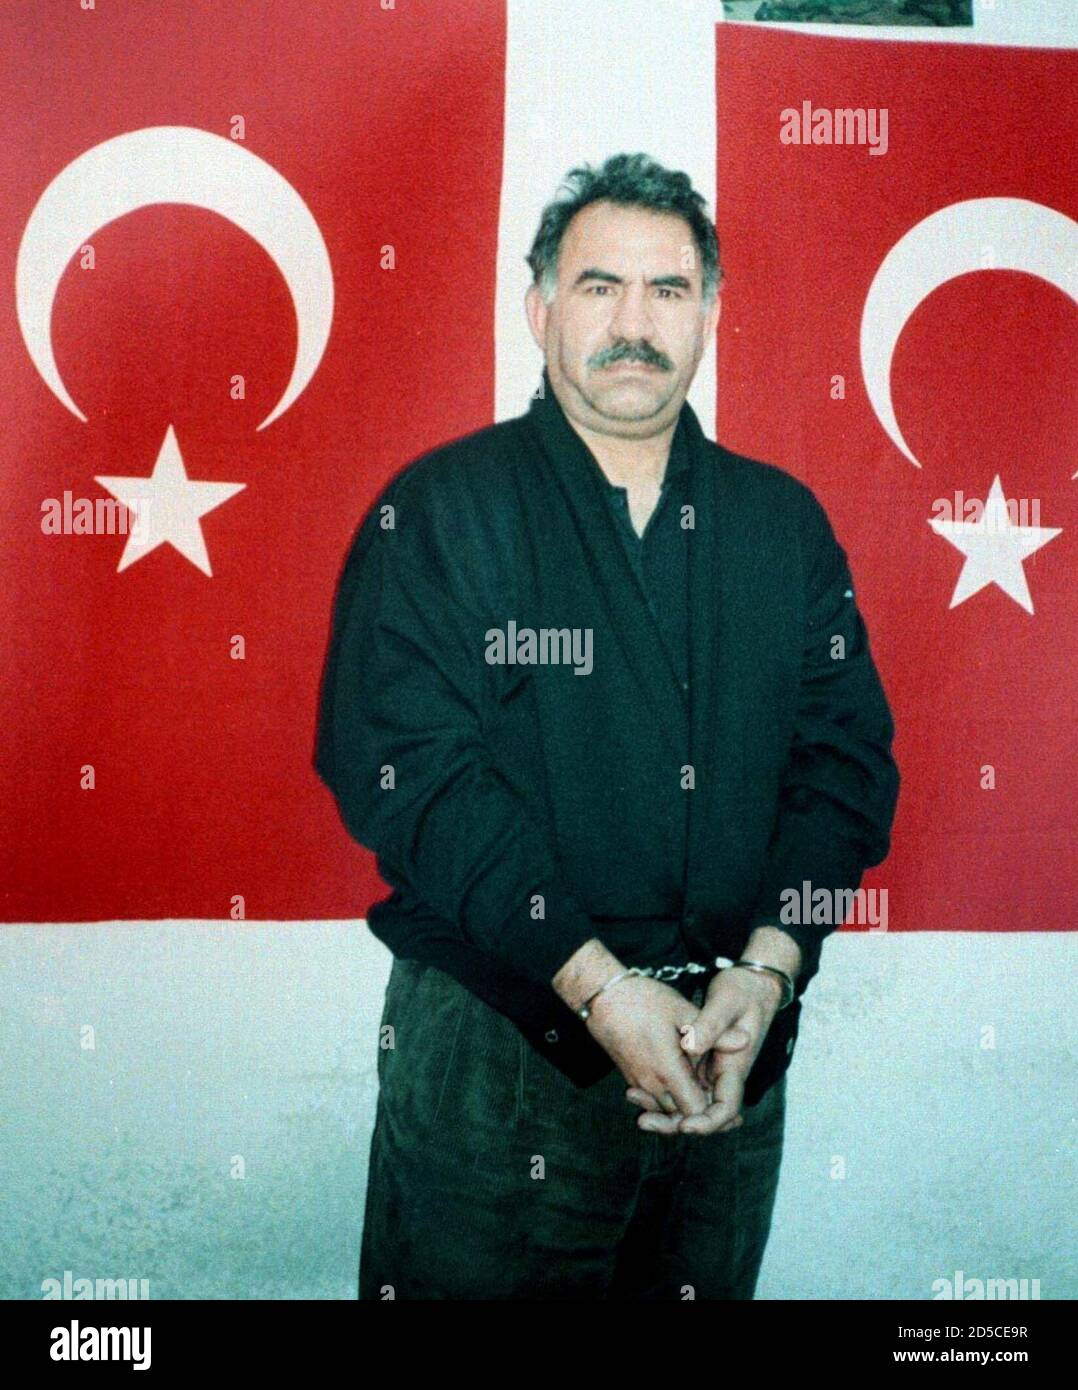 Kurdish rebel leader Abdullah Ocalan poses for the camera between two Turkish flags after he arrives on an island prison of Imrali, in the Sea of Marmara some 60 kms (37 miles)